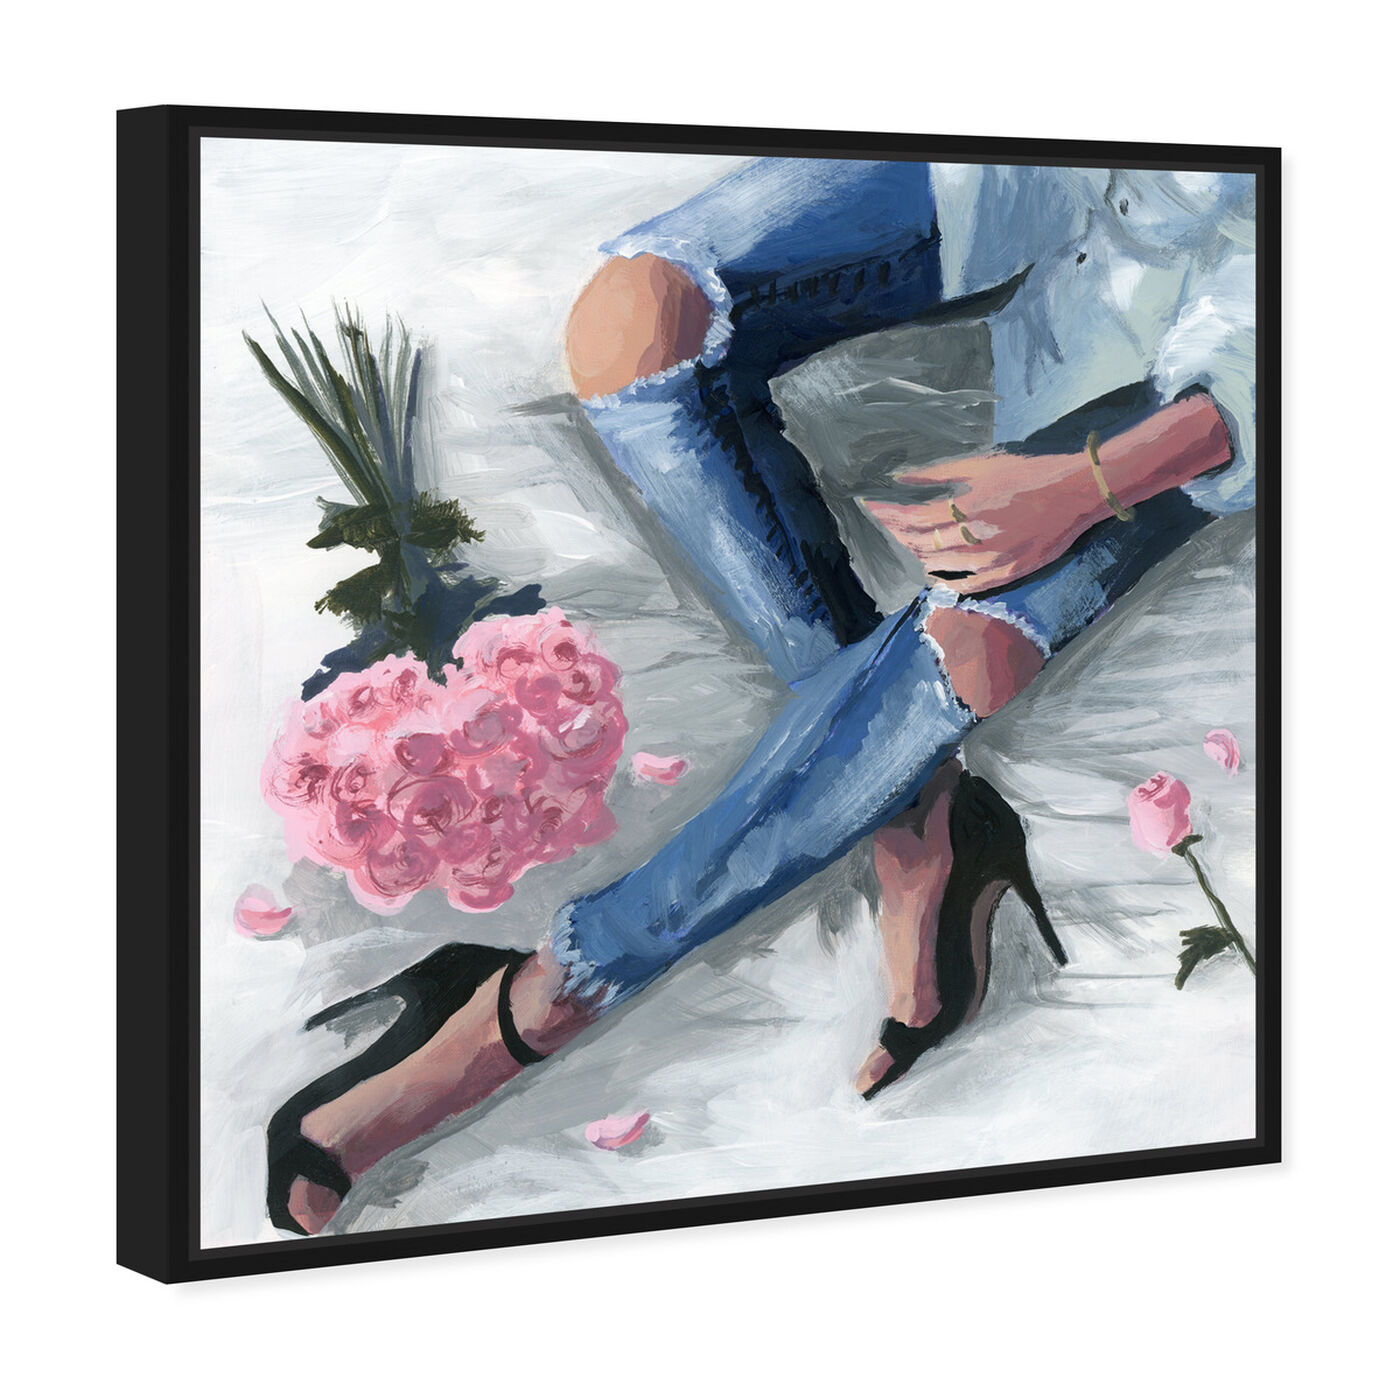 Angled view of Romantic Jeans featuring fashion and glam and outfits art.